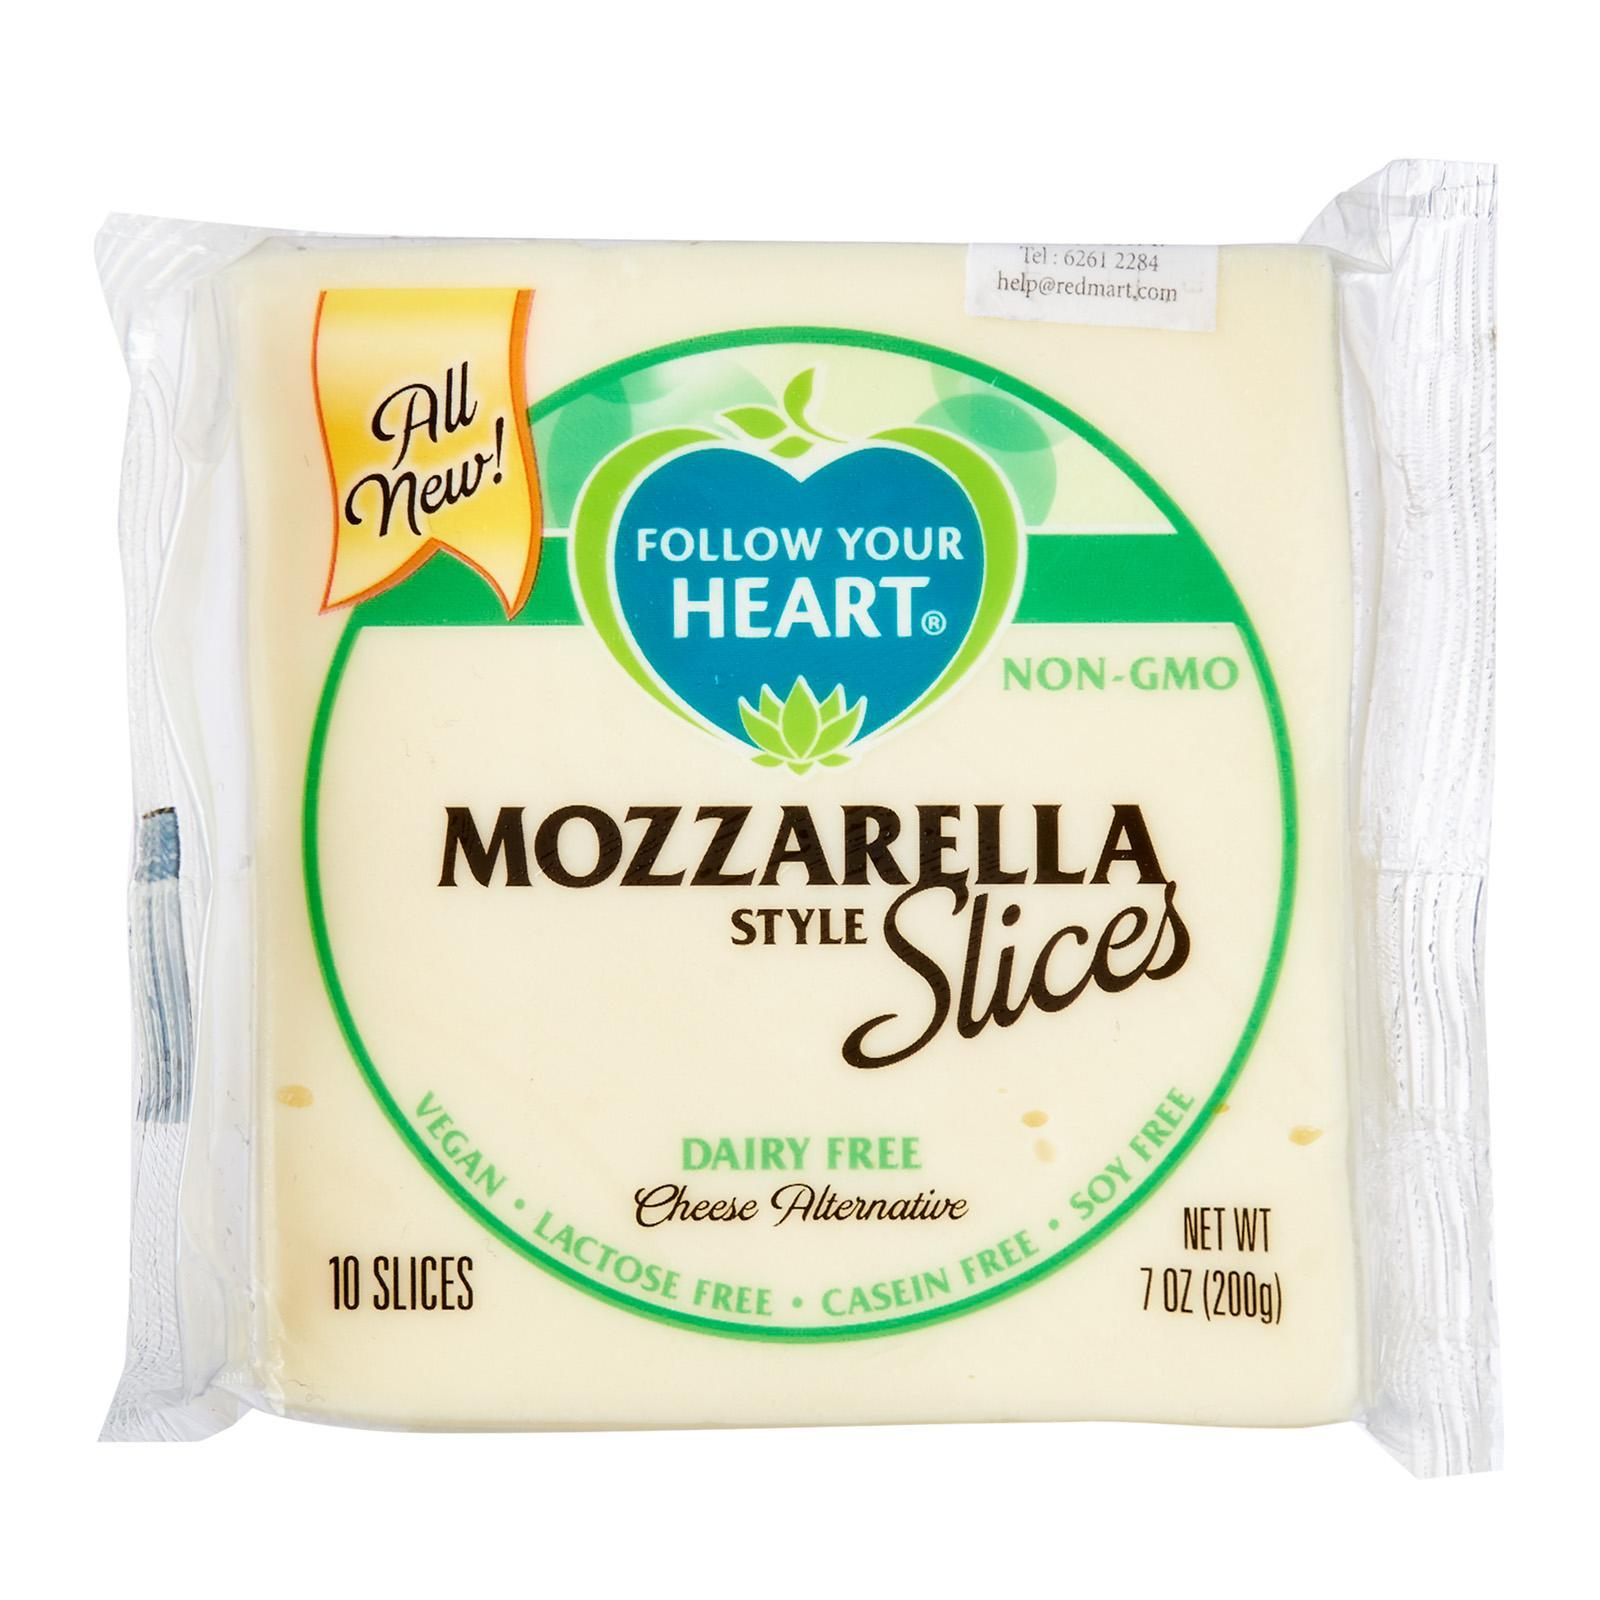 Follow Your Heart Vegan Gourmet Cheese Alternative Mozzarella Slices